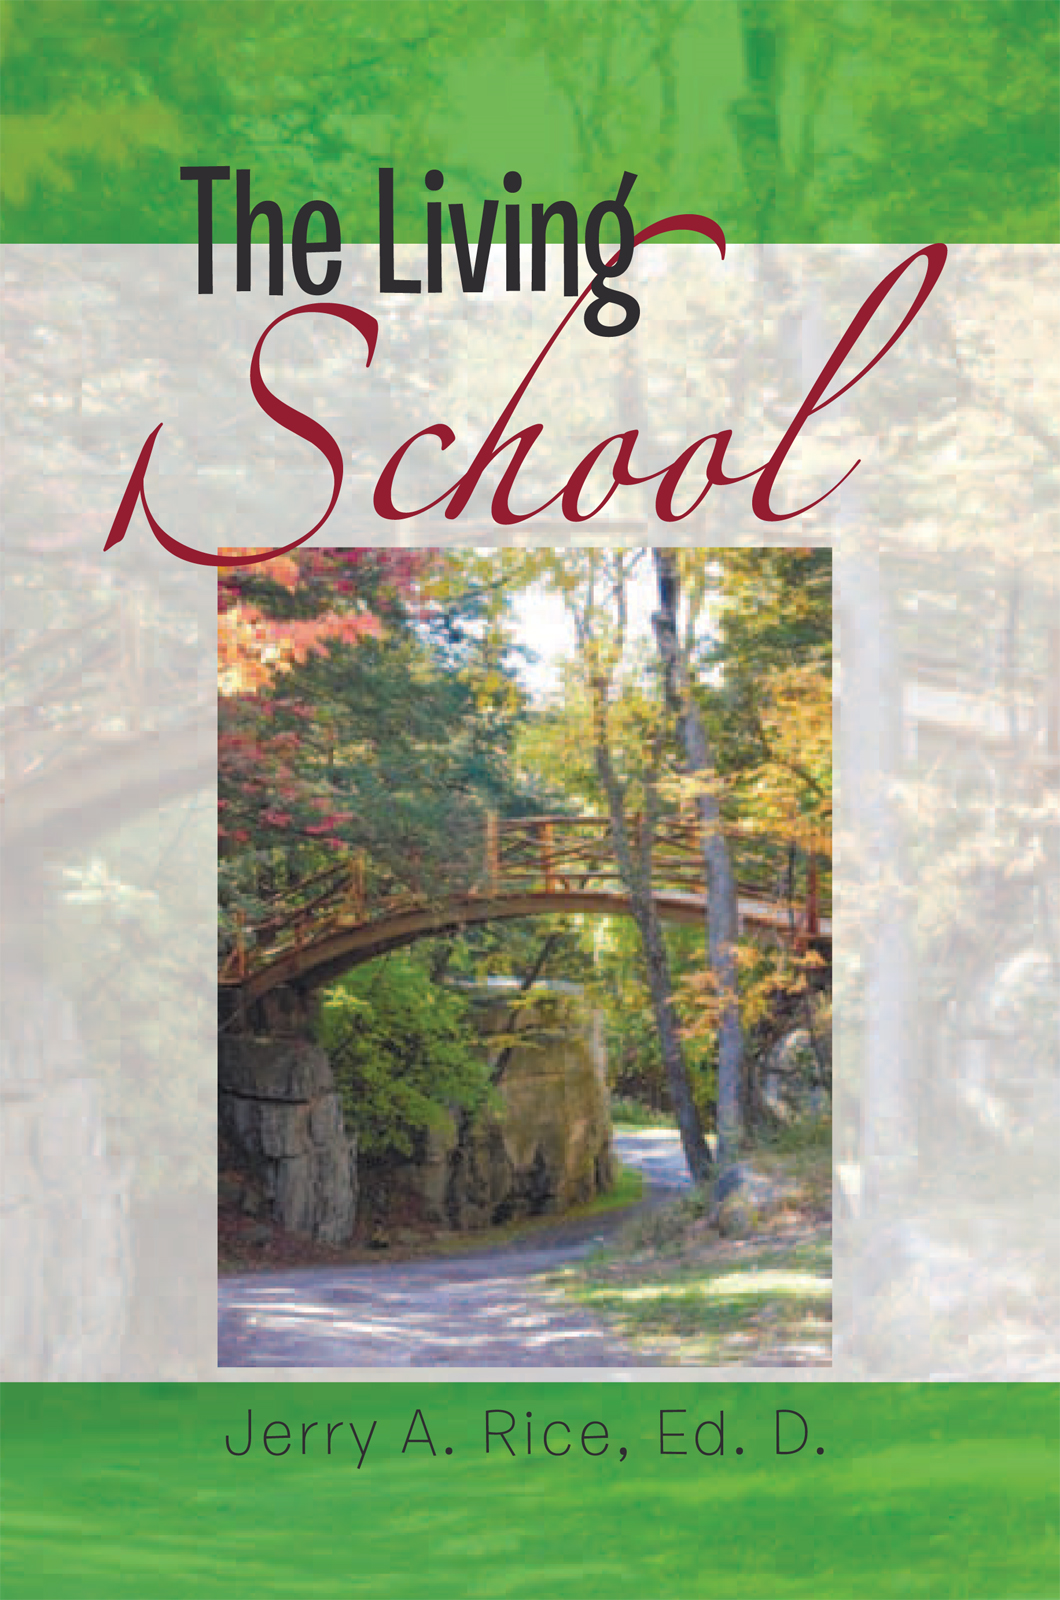 The Living School